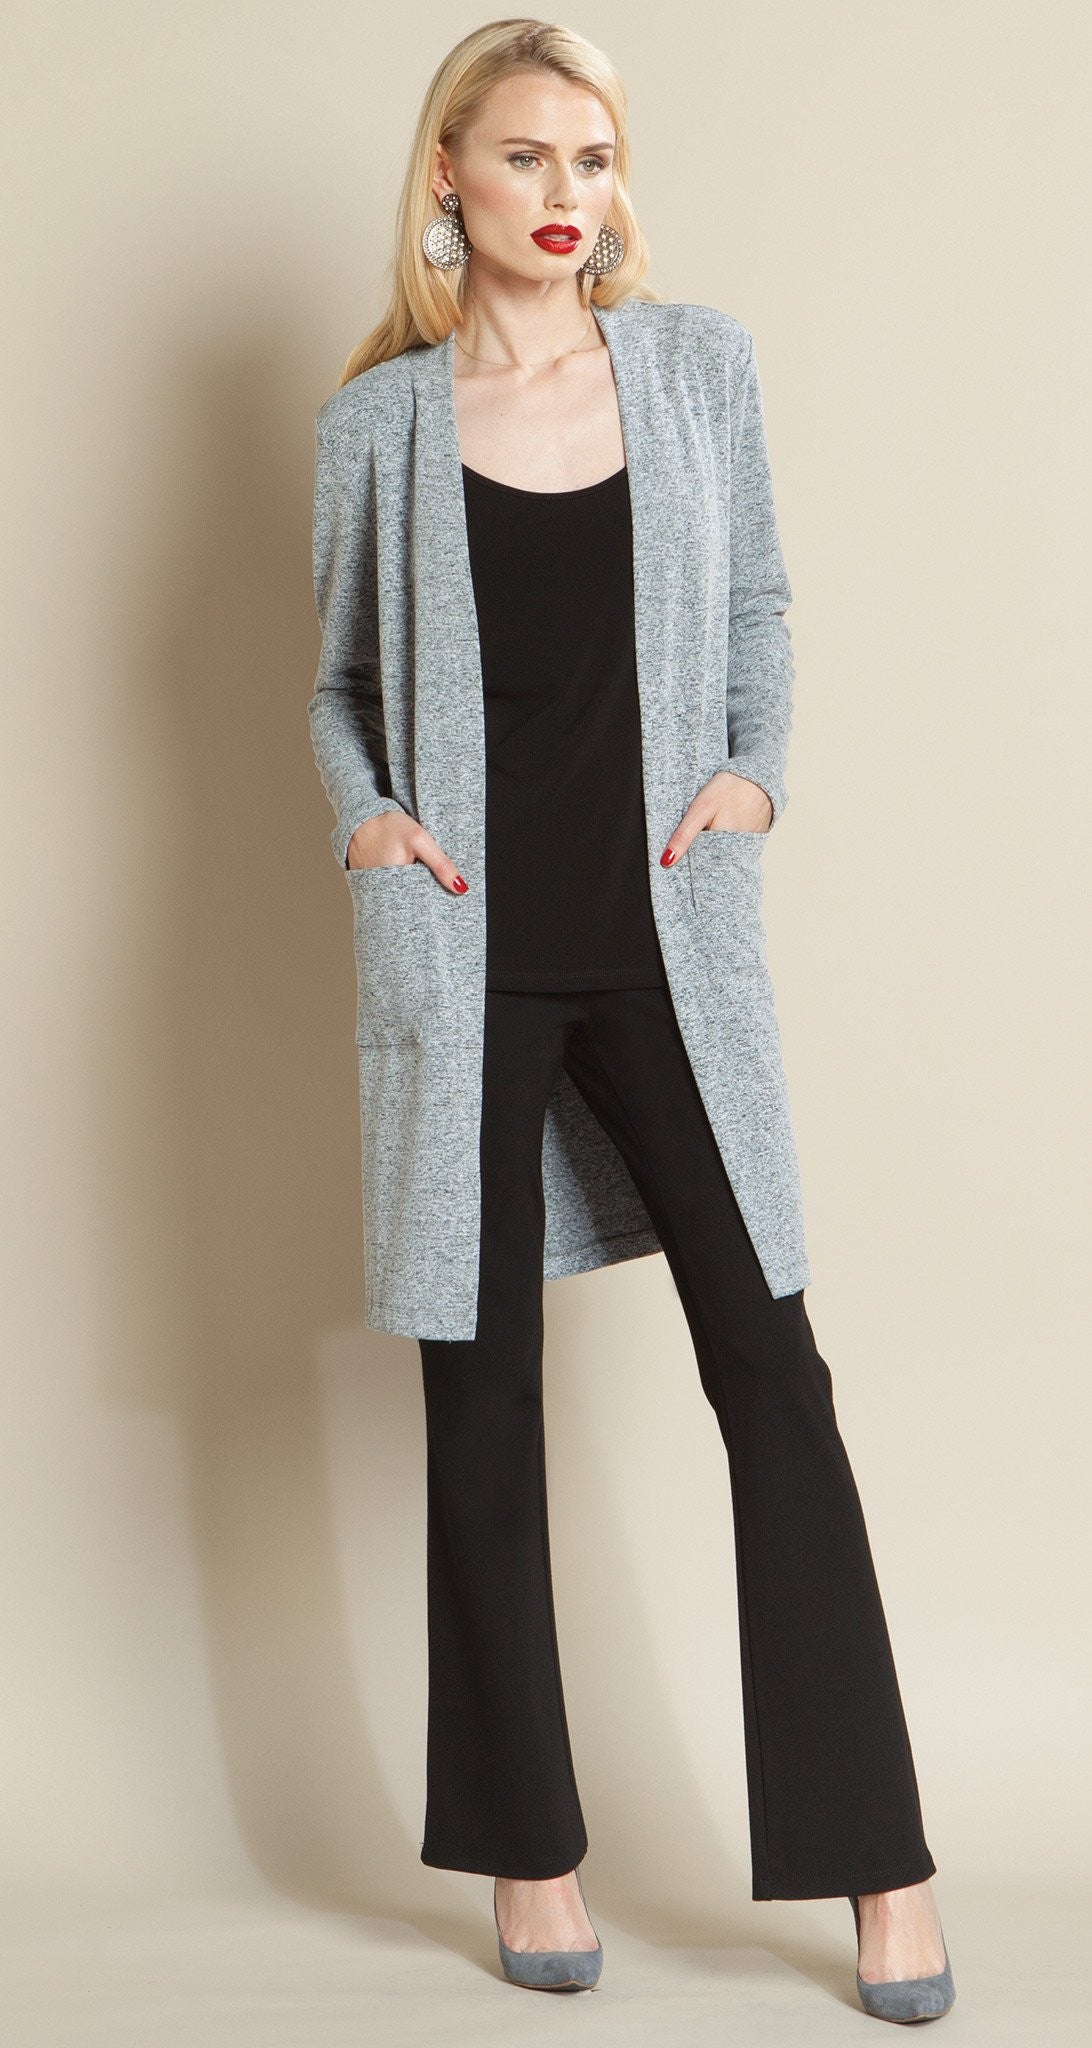 Modern Pocket Sweater Cardigan - Grey